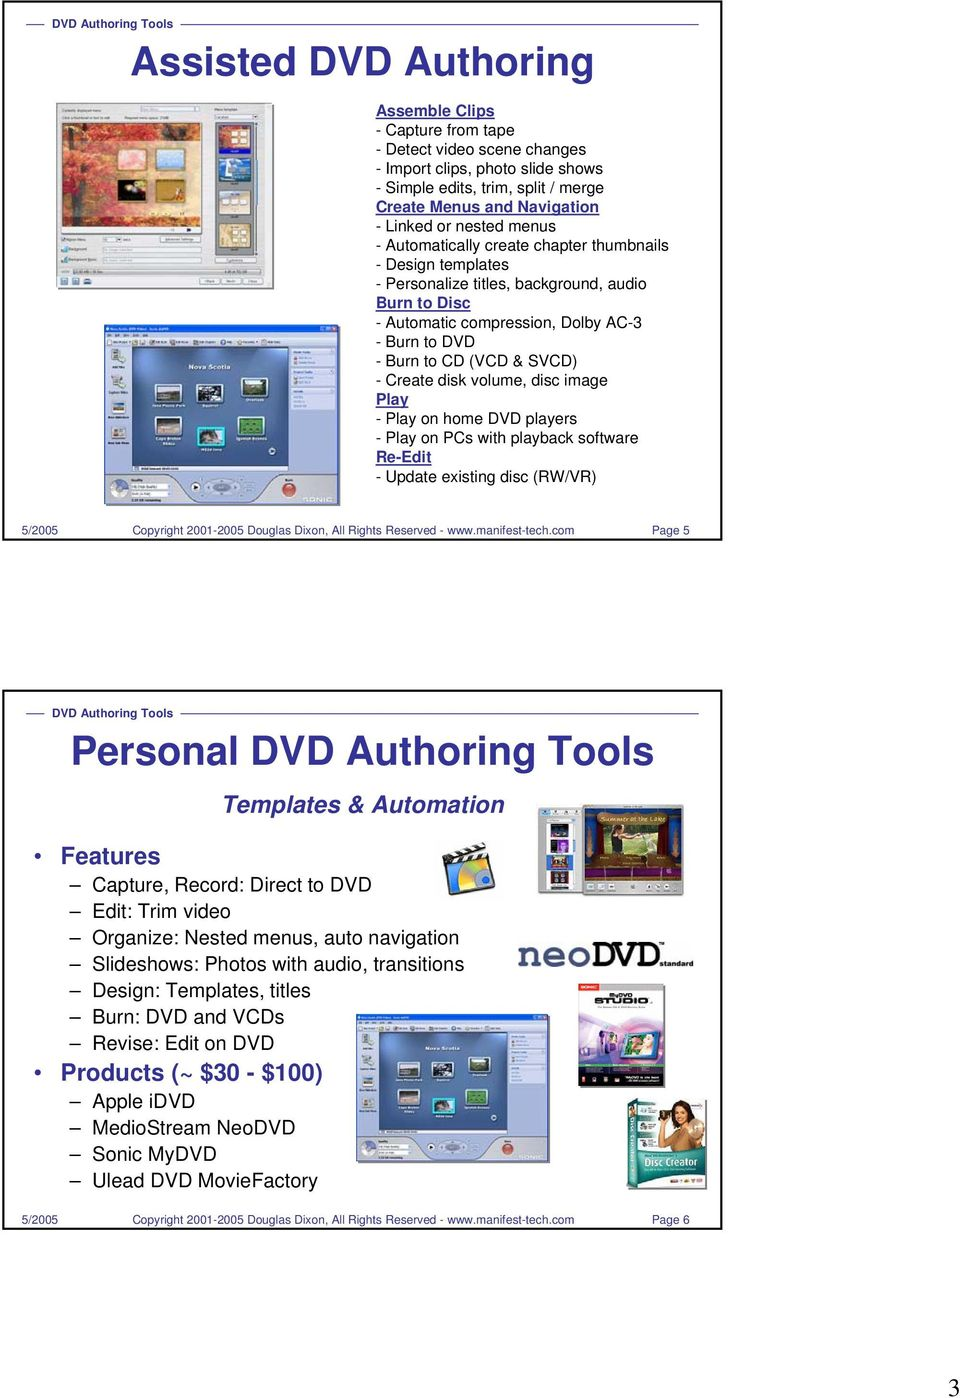 SVCD) - Create disk volume, disc image Play - Play on home DVD players - Play on PCs with playback software Re-Edit - Update existing disc (RW/VR) Page 5 Personal Templates & Automation Features